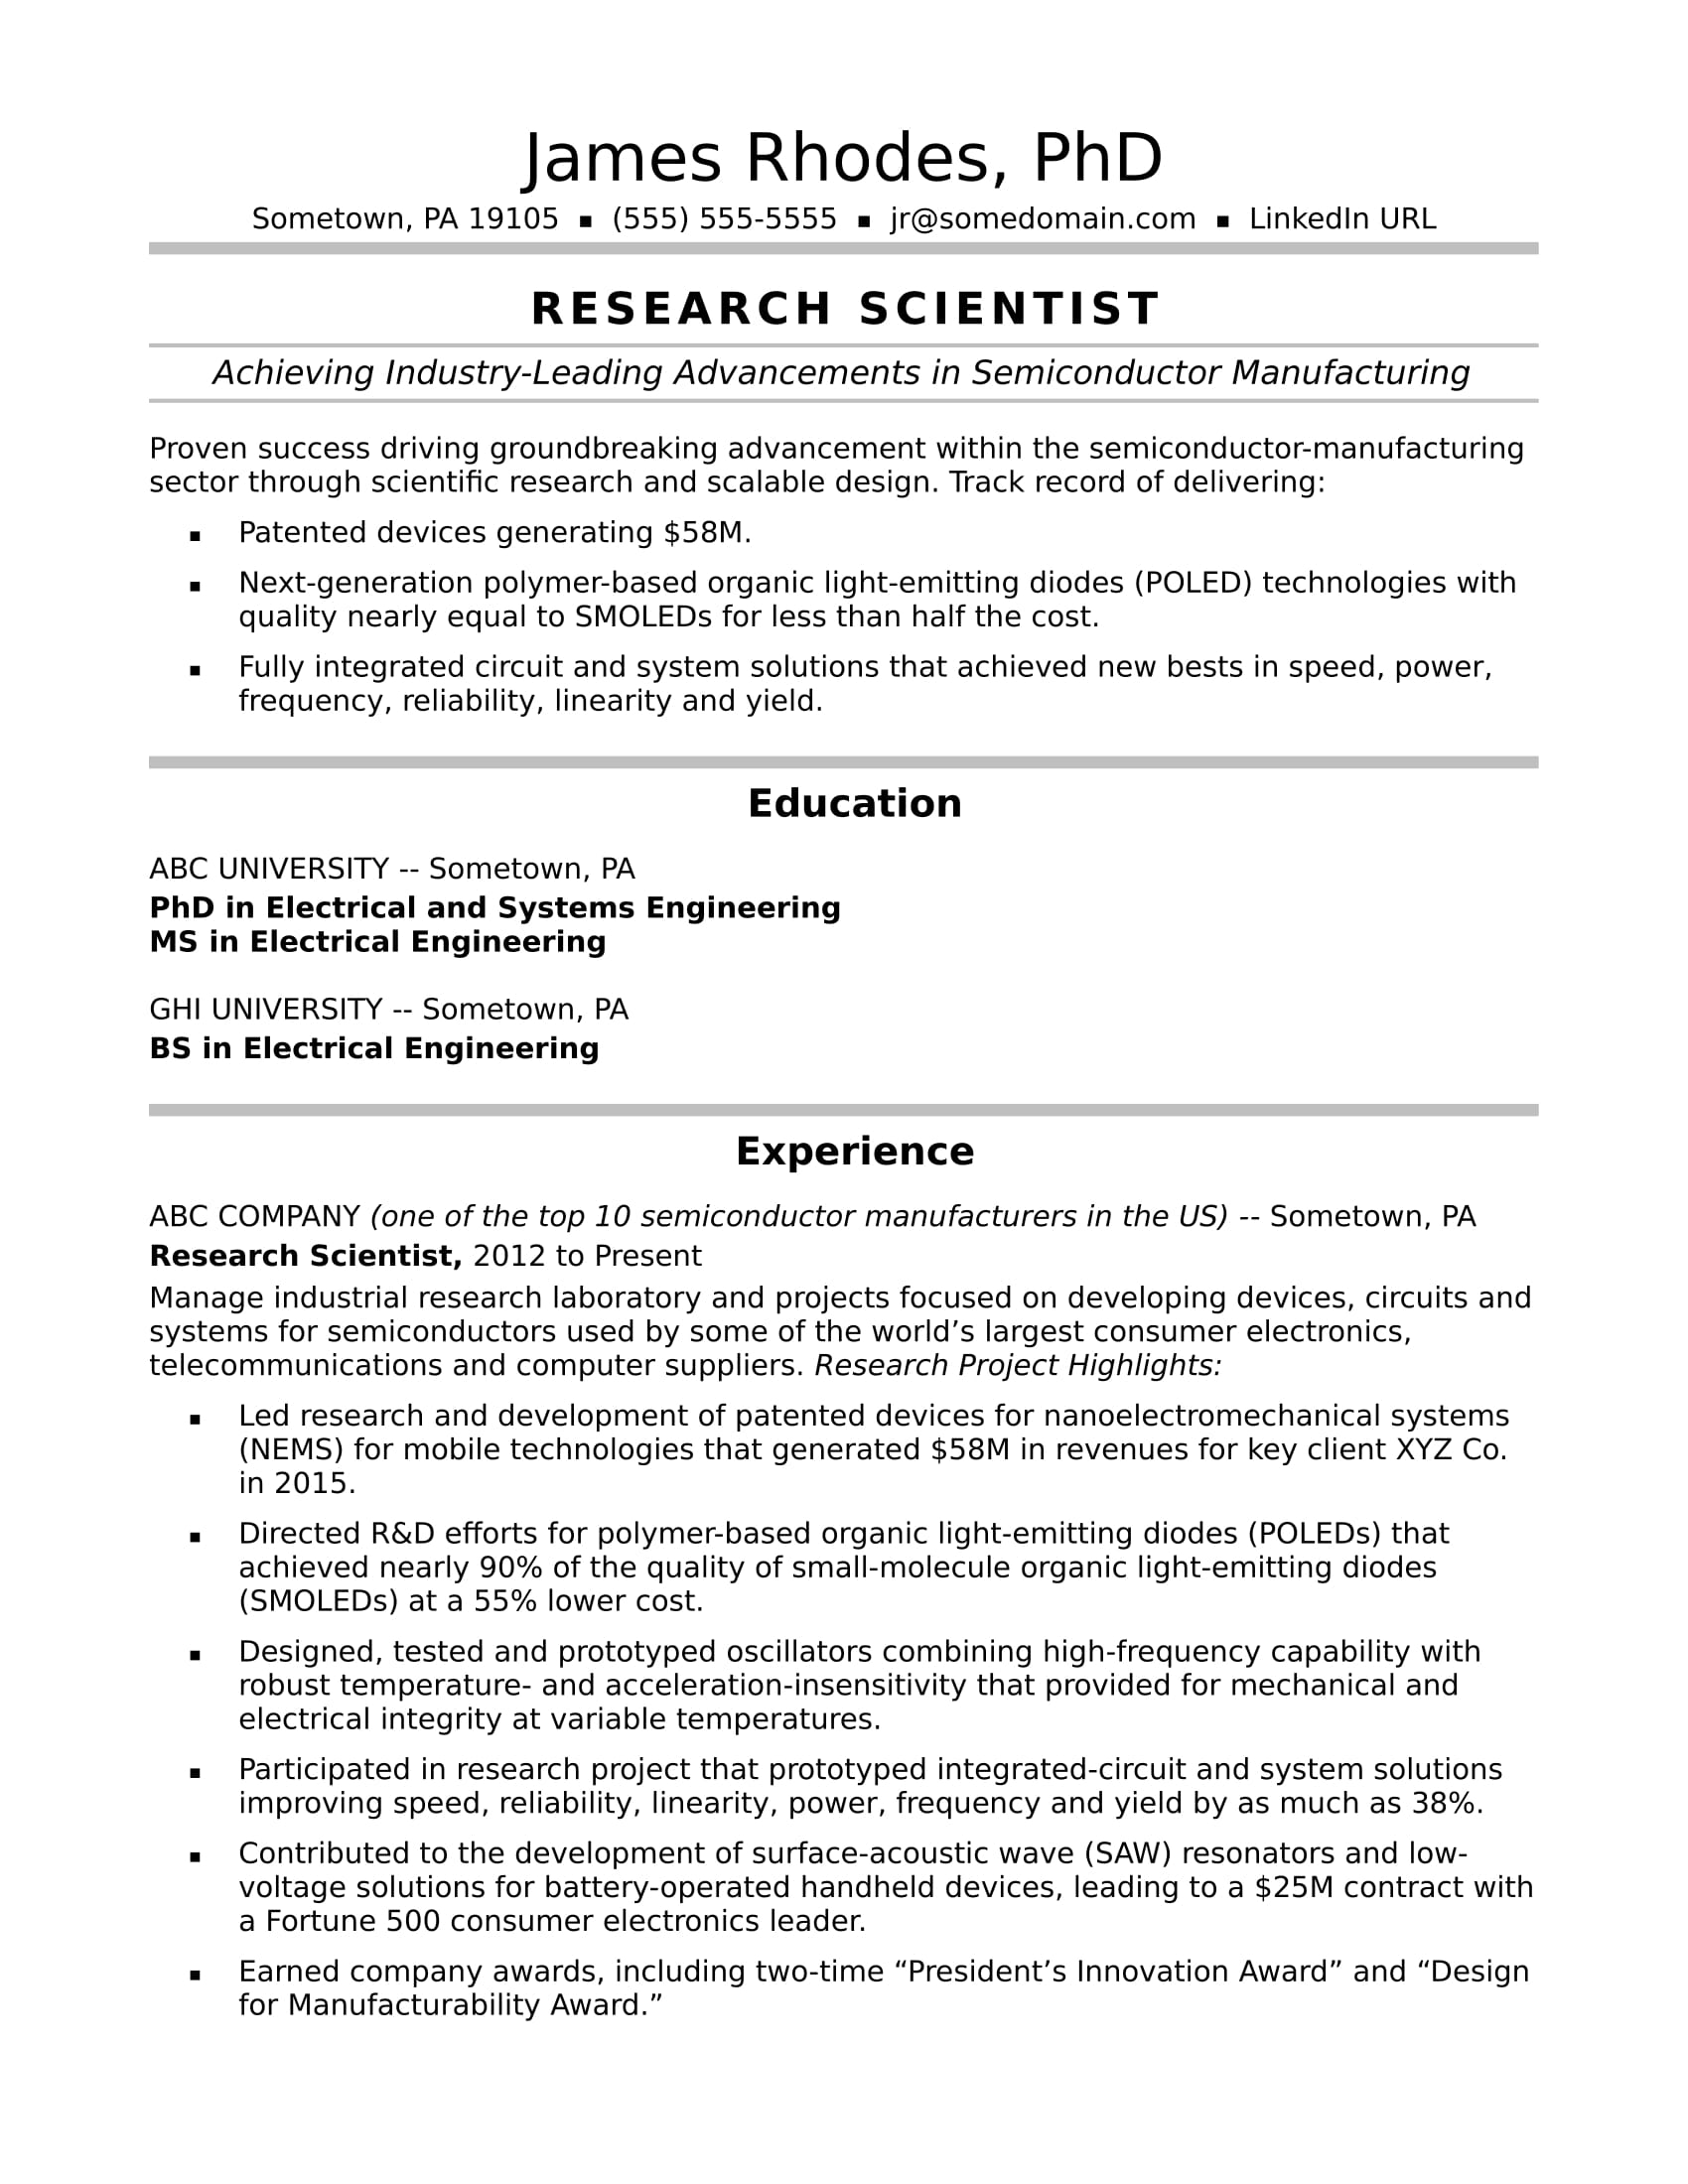 Research Scientist Resume Sample | Monster.com